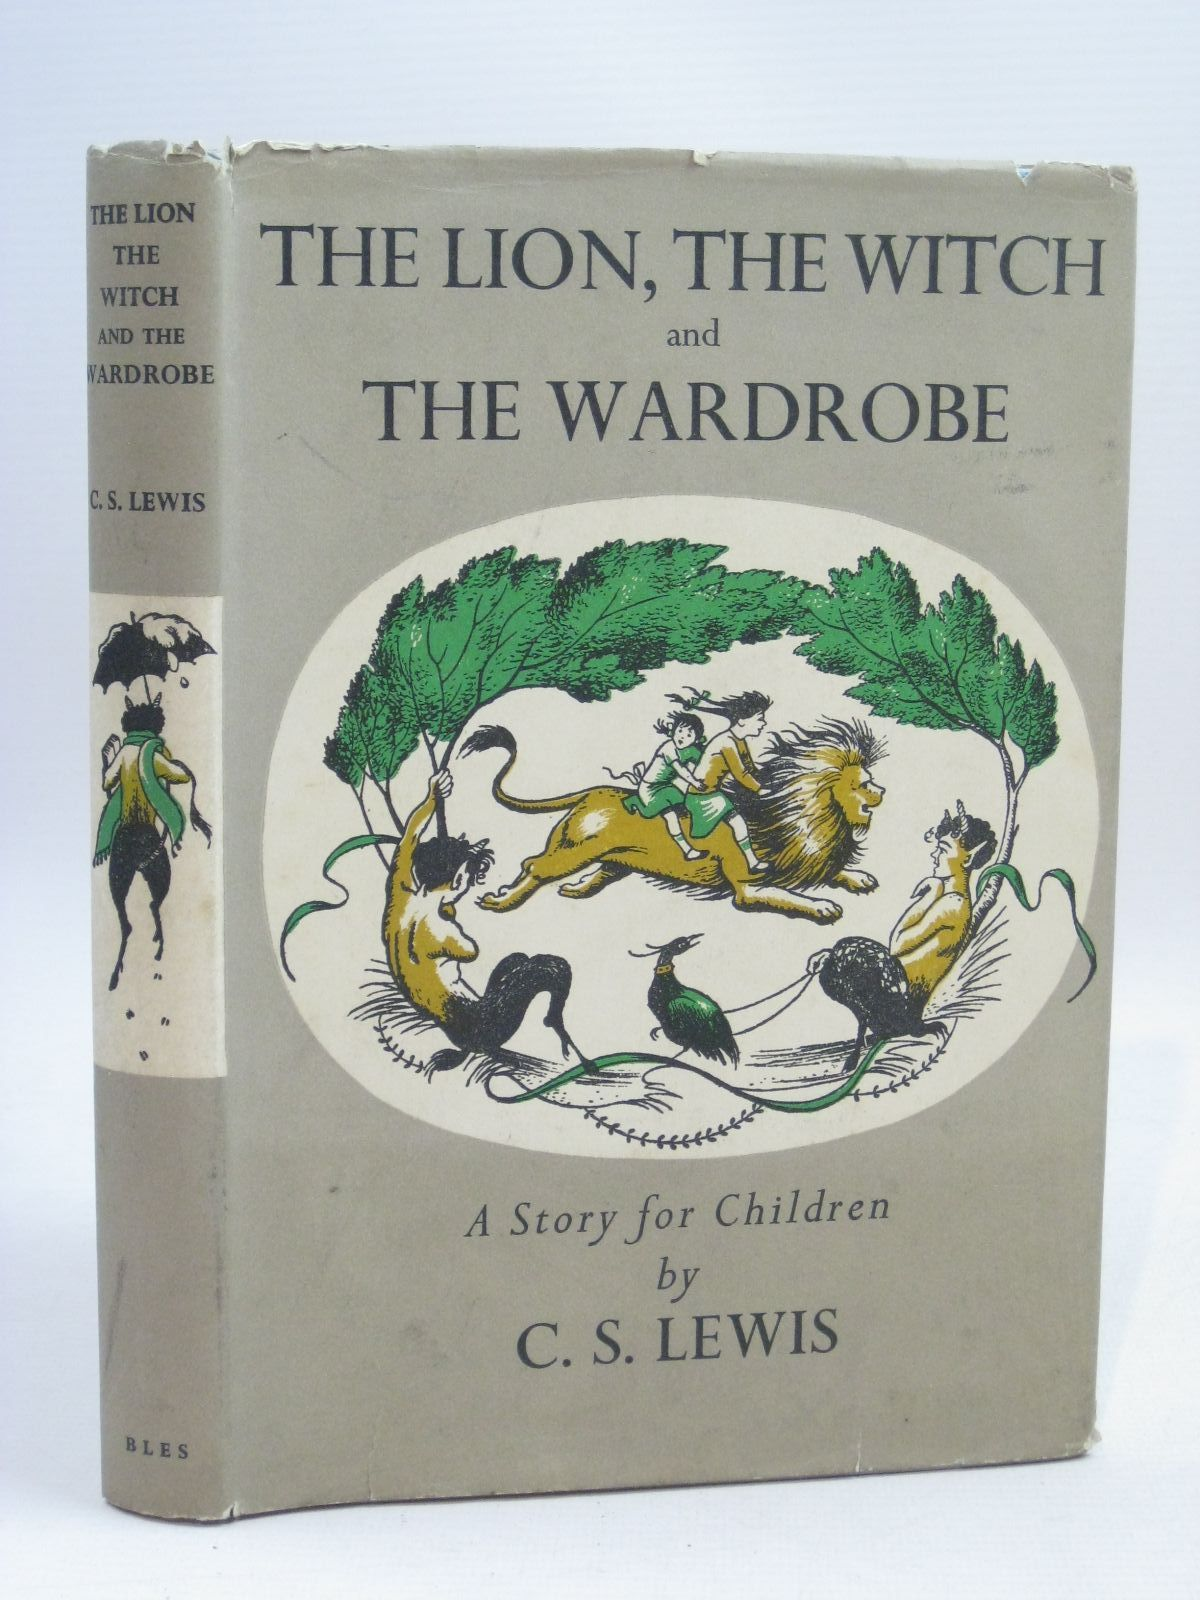 Study Guides to the Works of C.S. Lewis